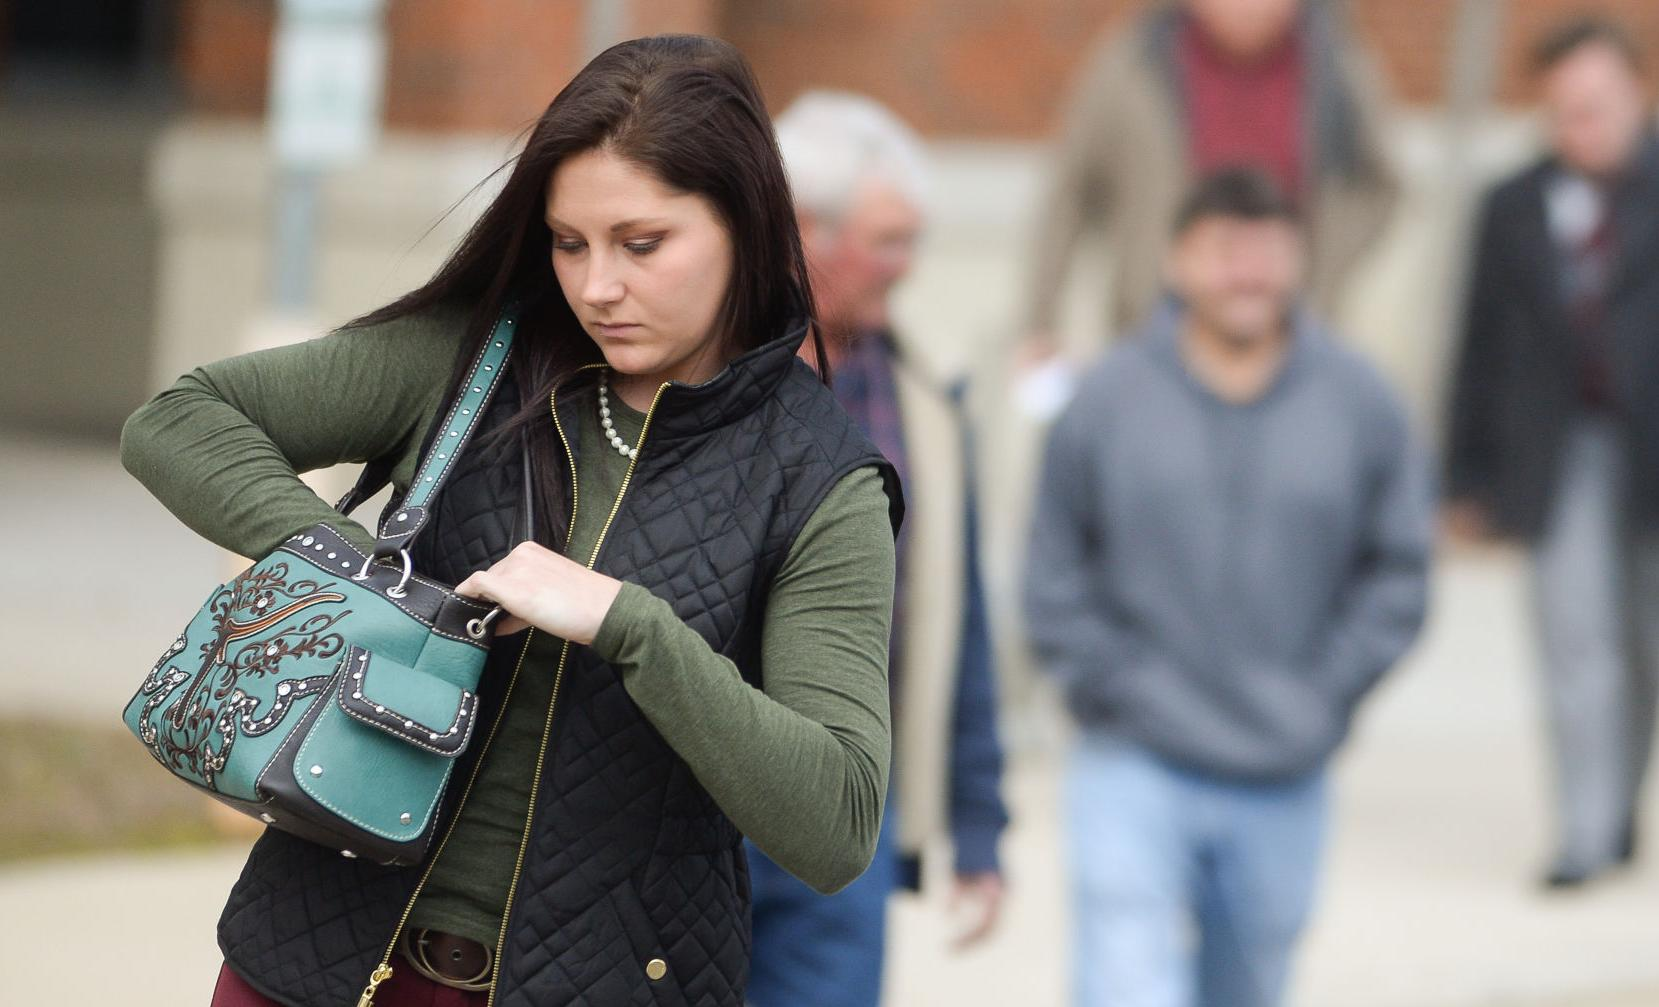 Fike Pleads Not Guilty In Death Of Her Son Lawrence